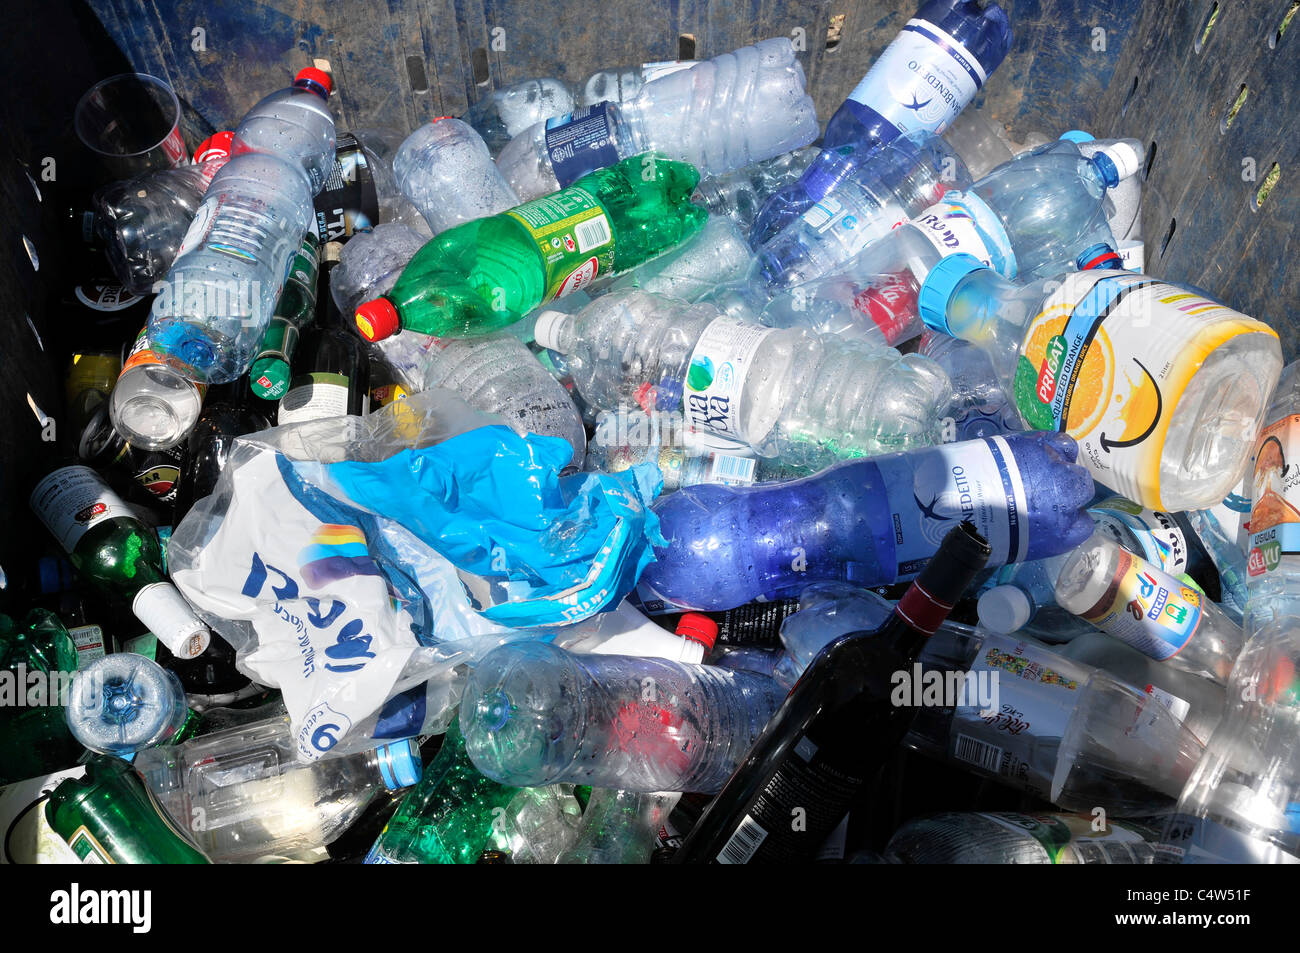 Plastic Bottle Recycling Glass And Plastic Bottles Recycling Bin Stock Photo Royalty Free